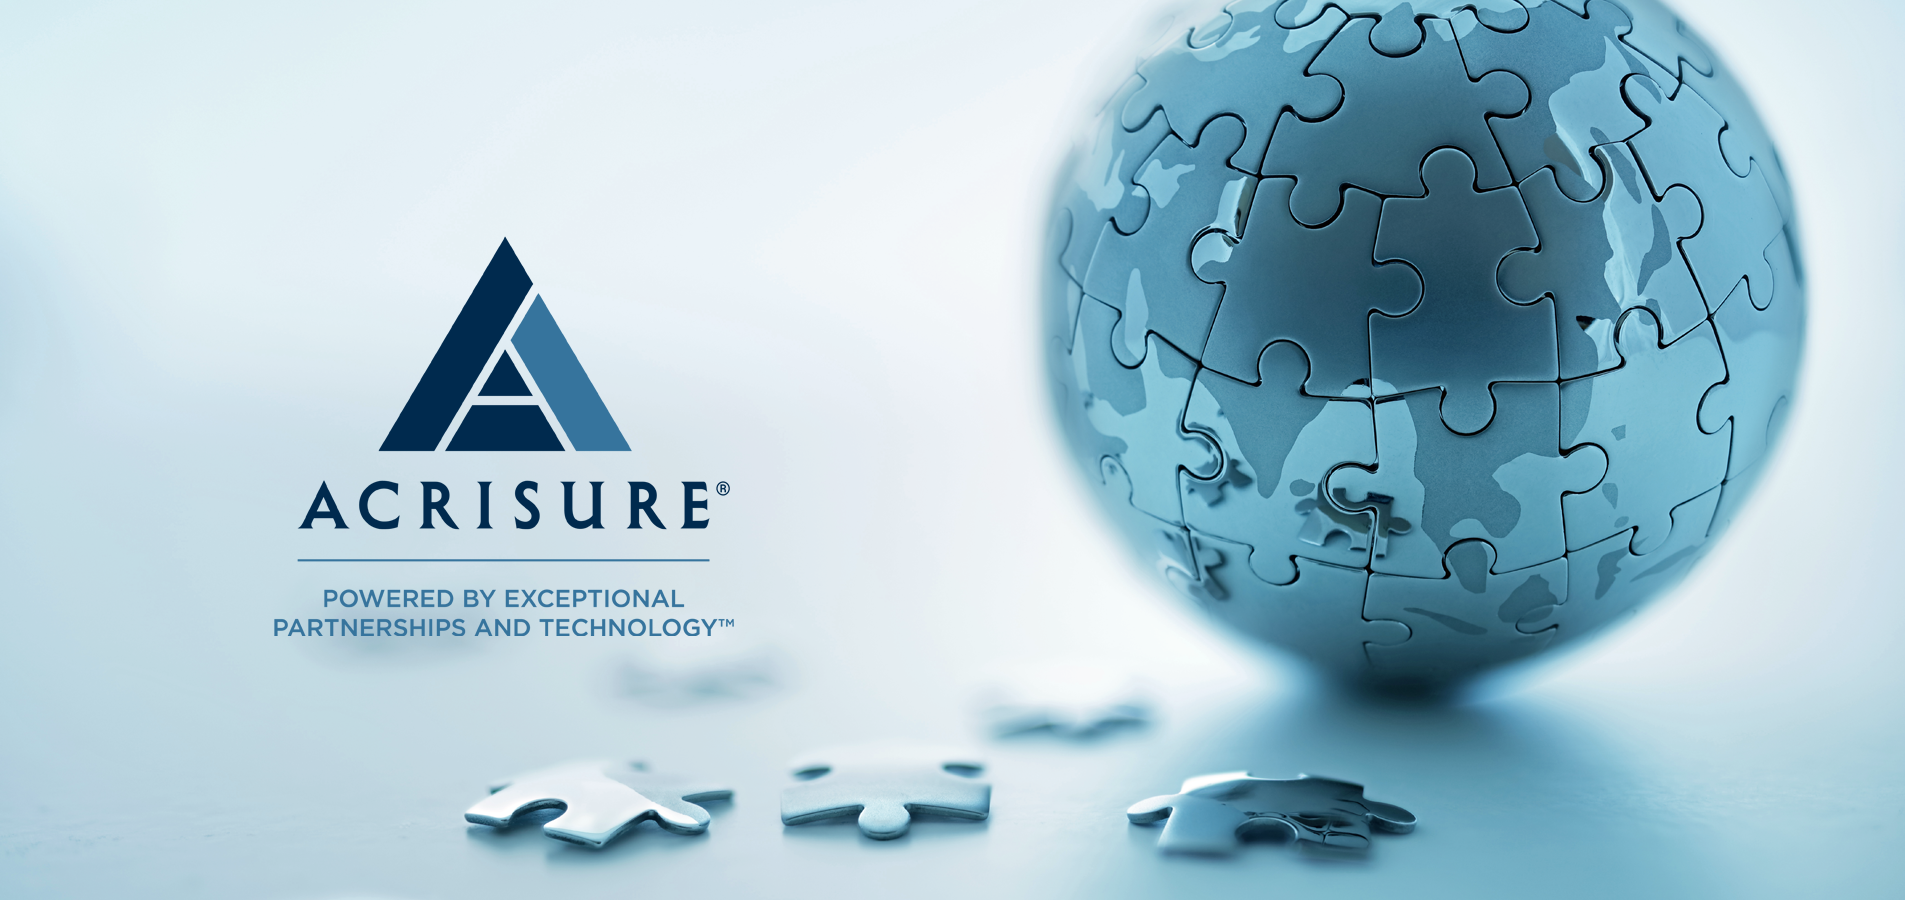 Quotall Announces Partnership With Acrisure